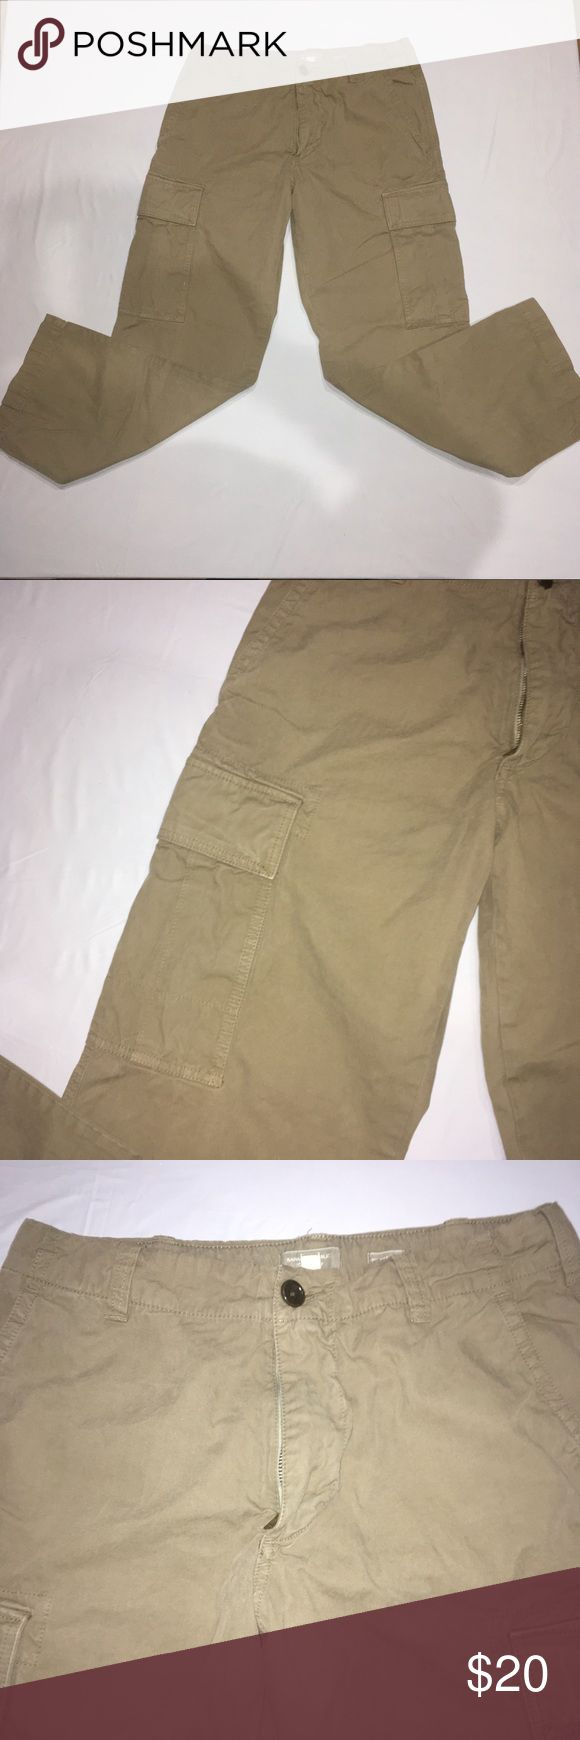 Banana Republic Green Men's (32/30) Cargo Pants Men's Banana Republic Green Cargo Pants. They are a size (32/30). These are relaxed fit. Has two pockets on the sides of the legs.  Has a 32 inch waist, 30 inch inseam, and a 10 inch rise. Banana Republic Jeans Relaxed